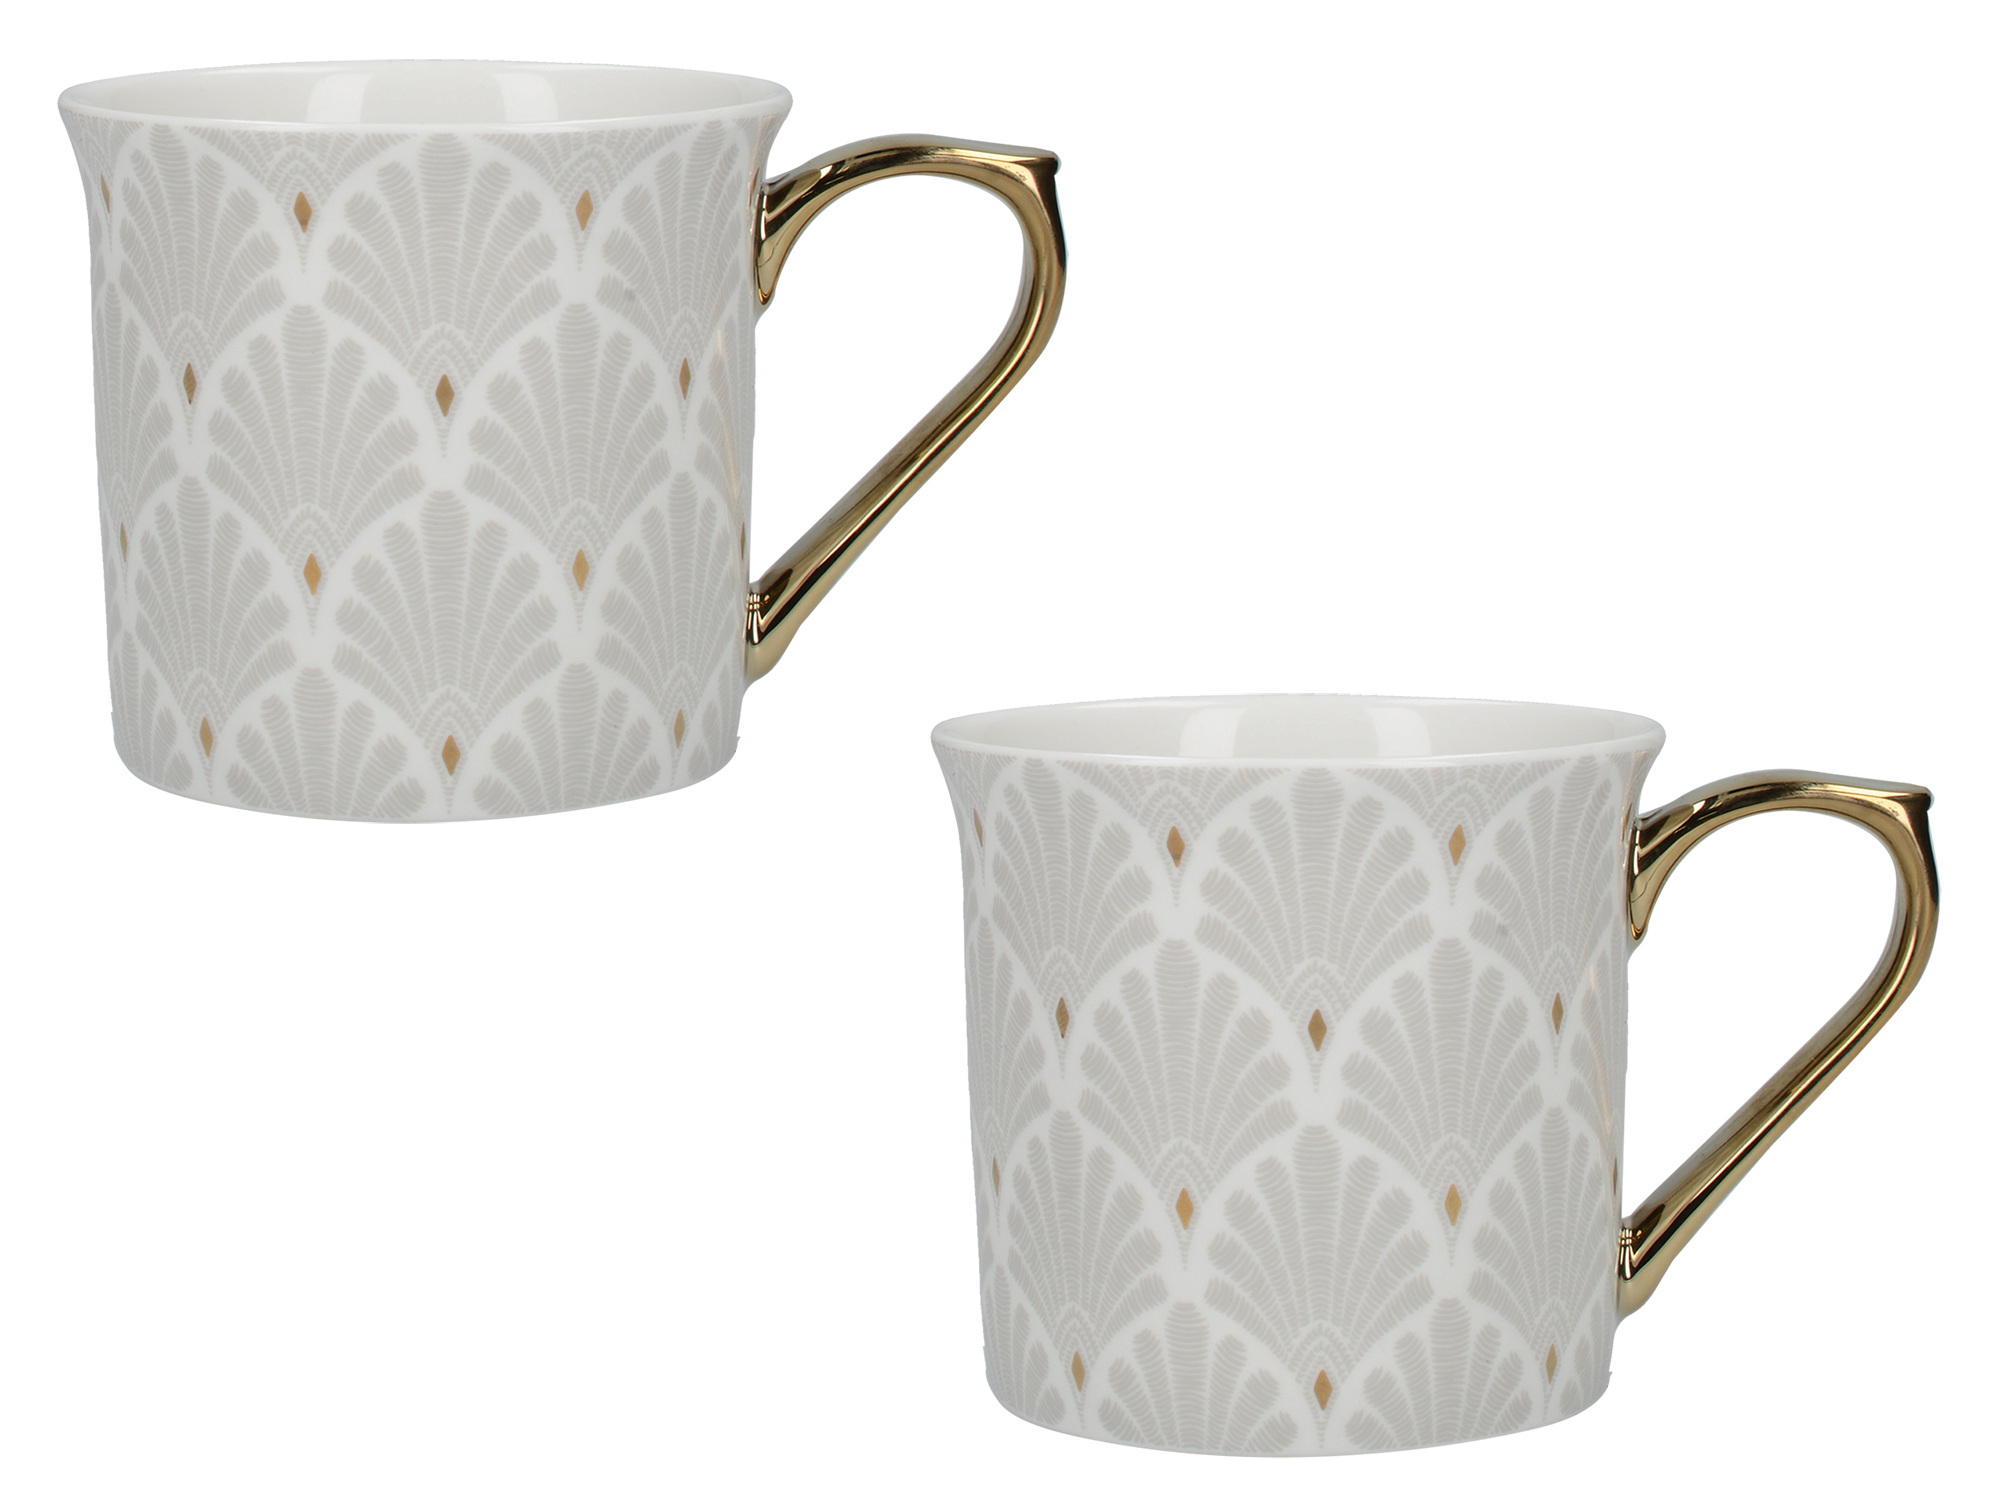 Victoria And Albert Scallop Shells Set Of 2 Palace Mugs White